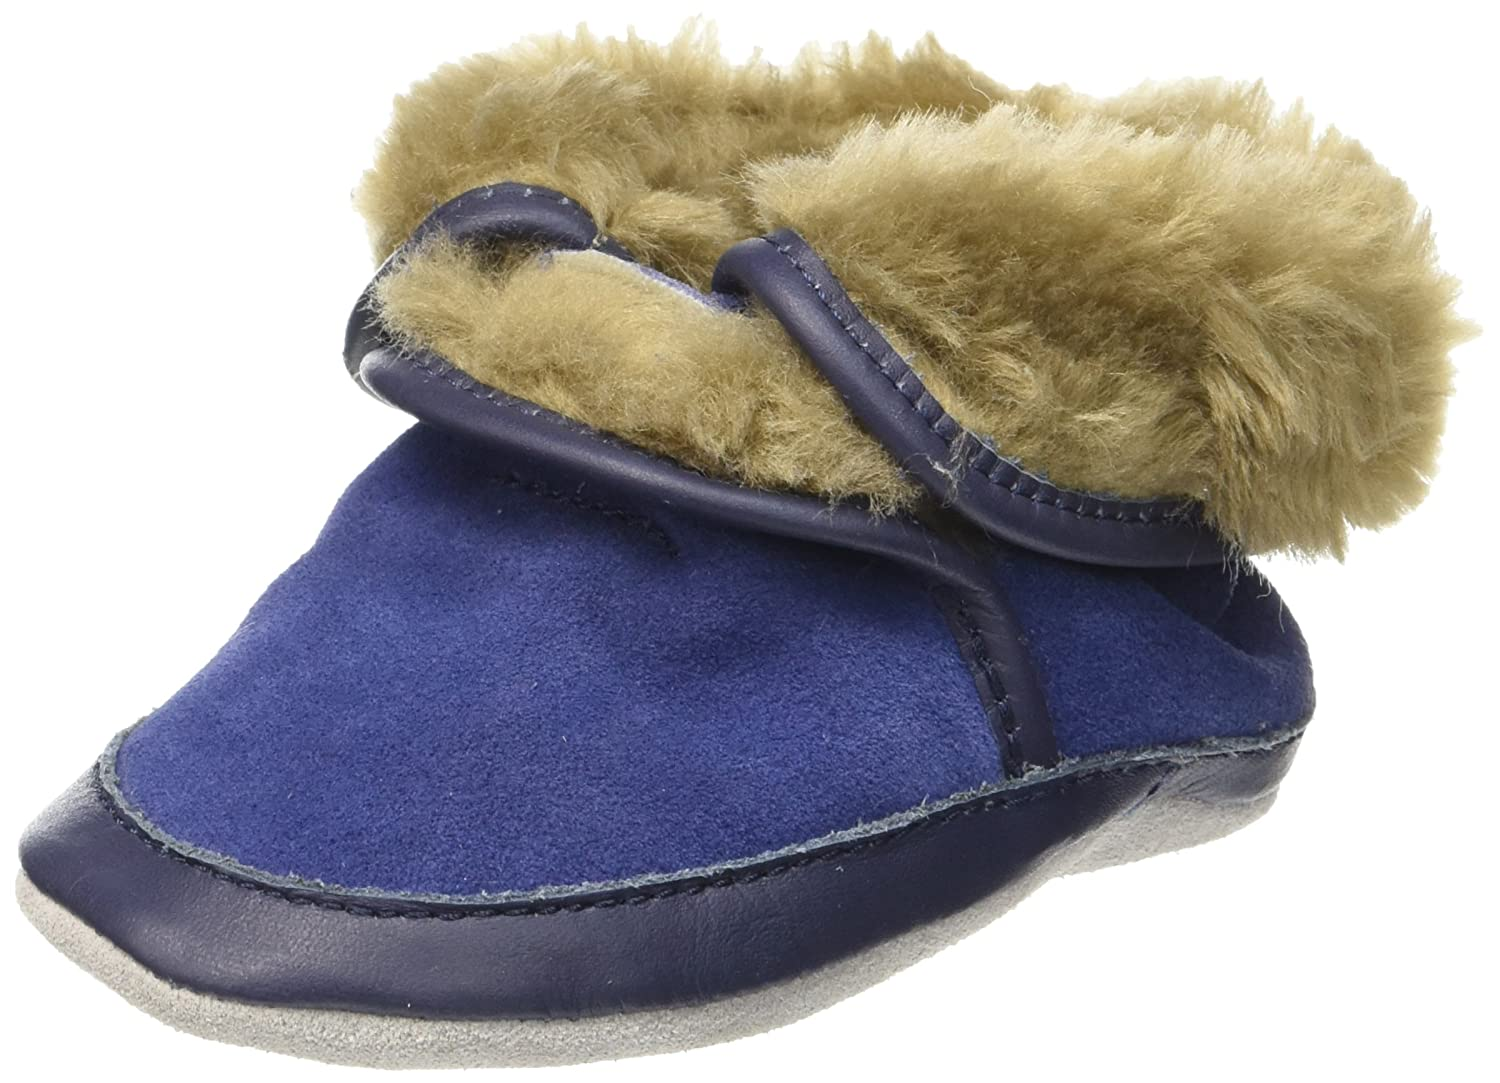 Robeez Cosy Boot, Baby Boys' Boots Baby Boys' Boots